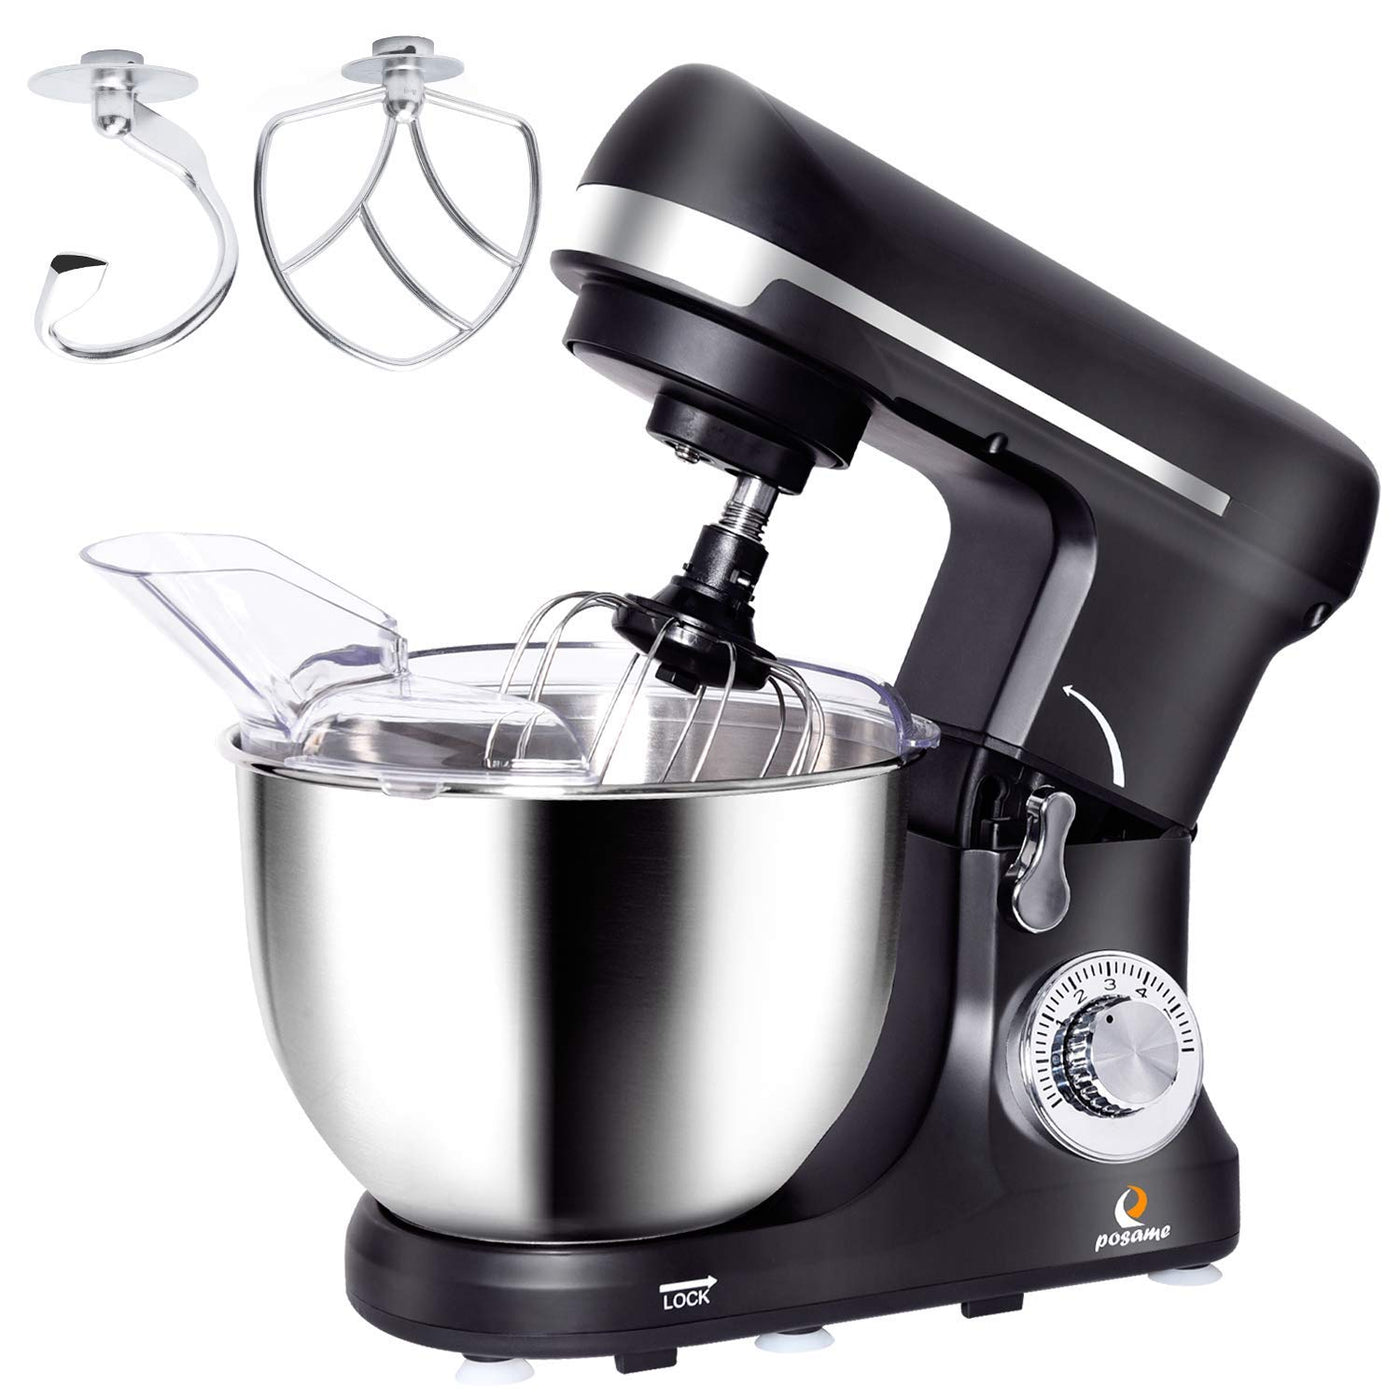 POSAME Professional Kitchenaid Stand Mixer 500W